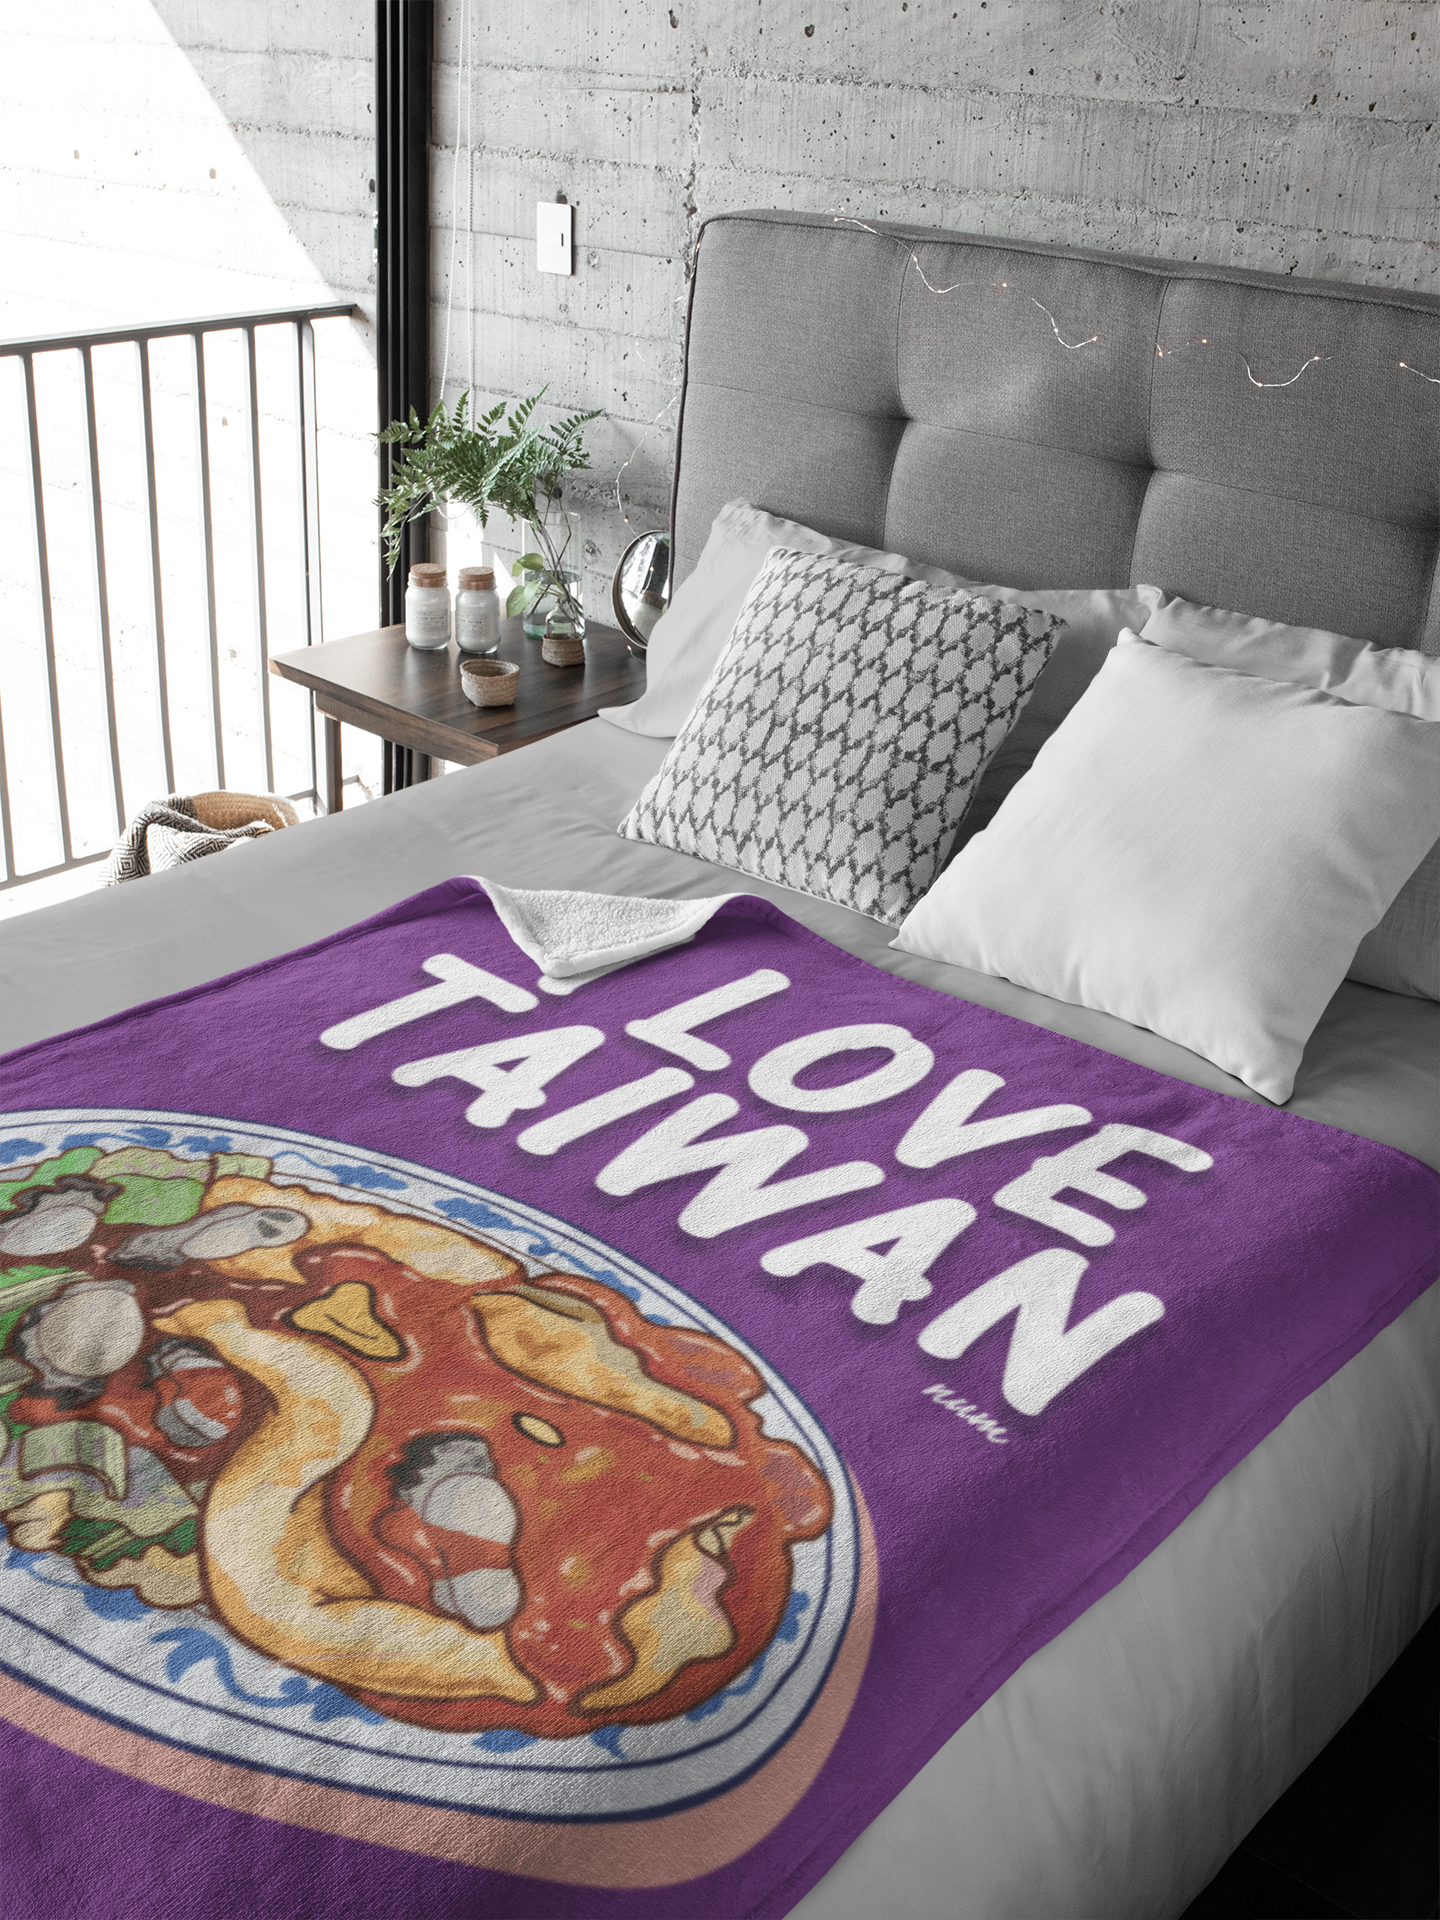 mockup-of-a-blanket-placed-over-a-bed-31314 (7).png